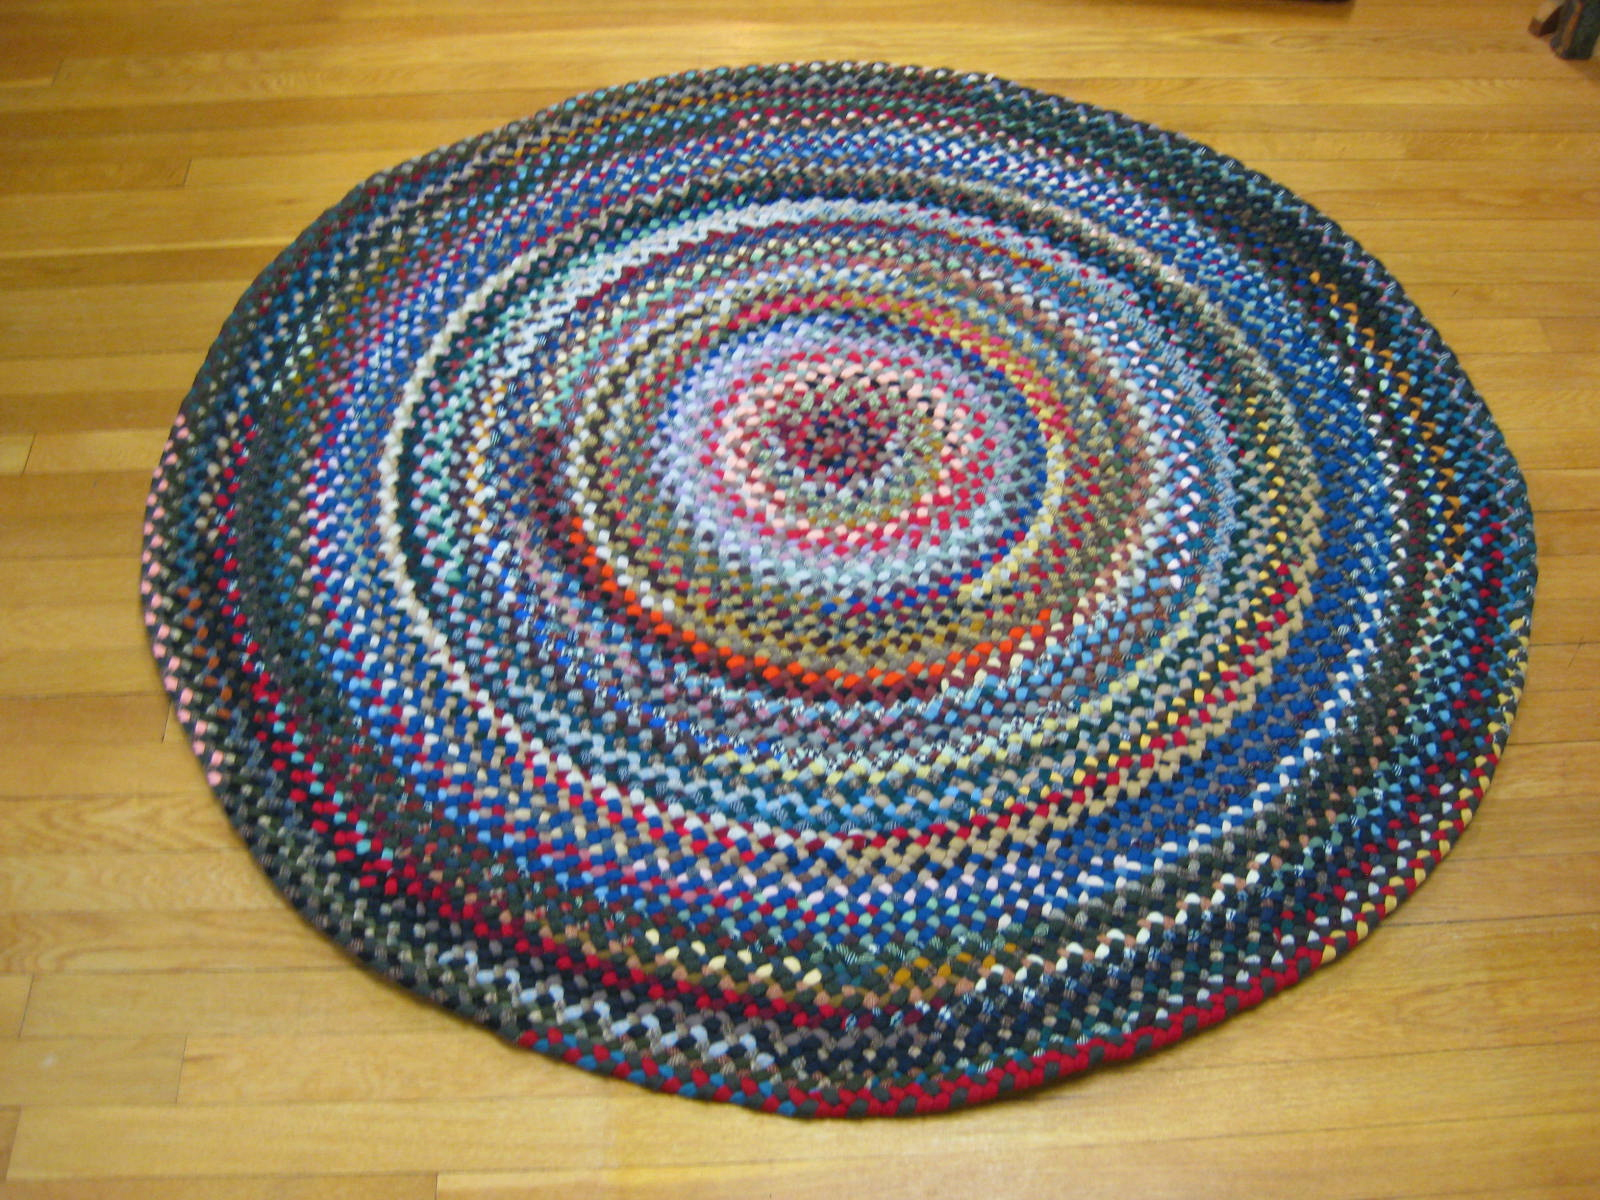 Comfy braided rug for floorings and rugs ideas with round braided rugs and braided area rugs